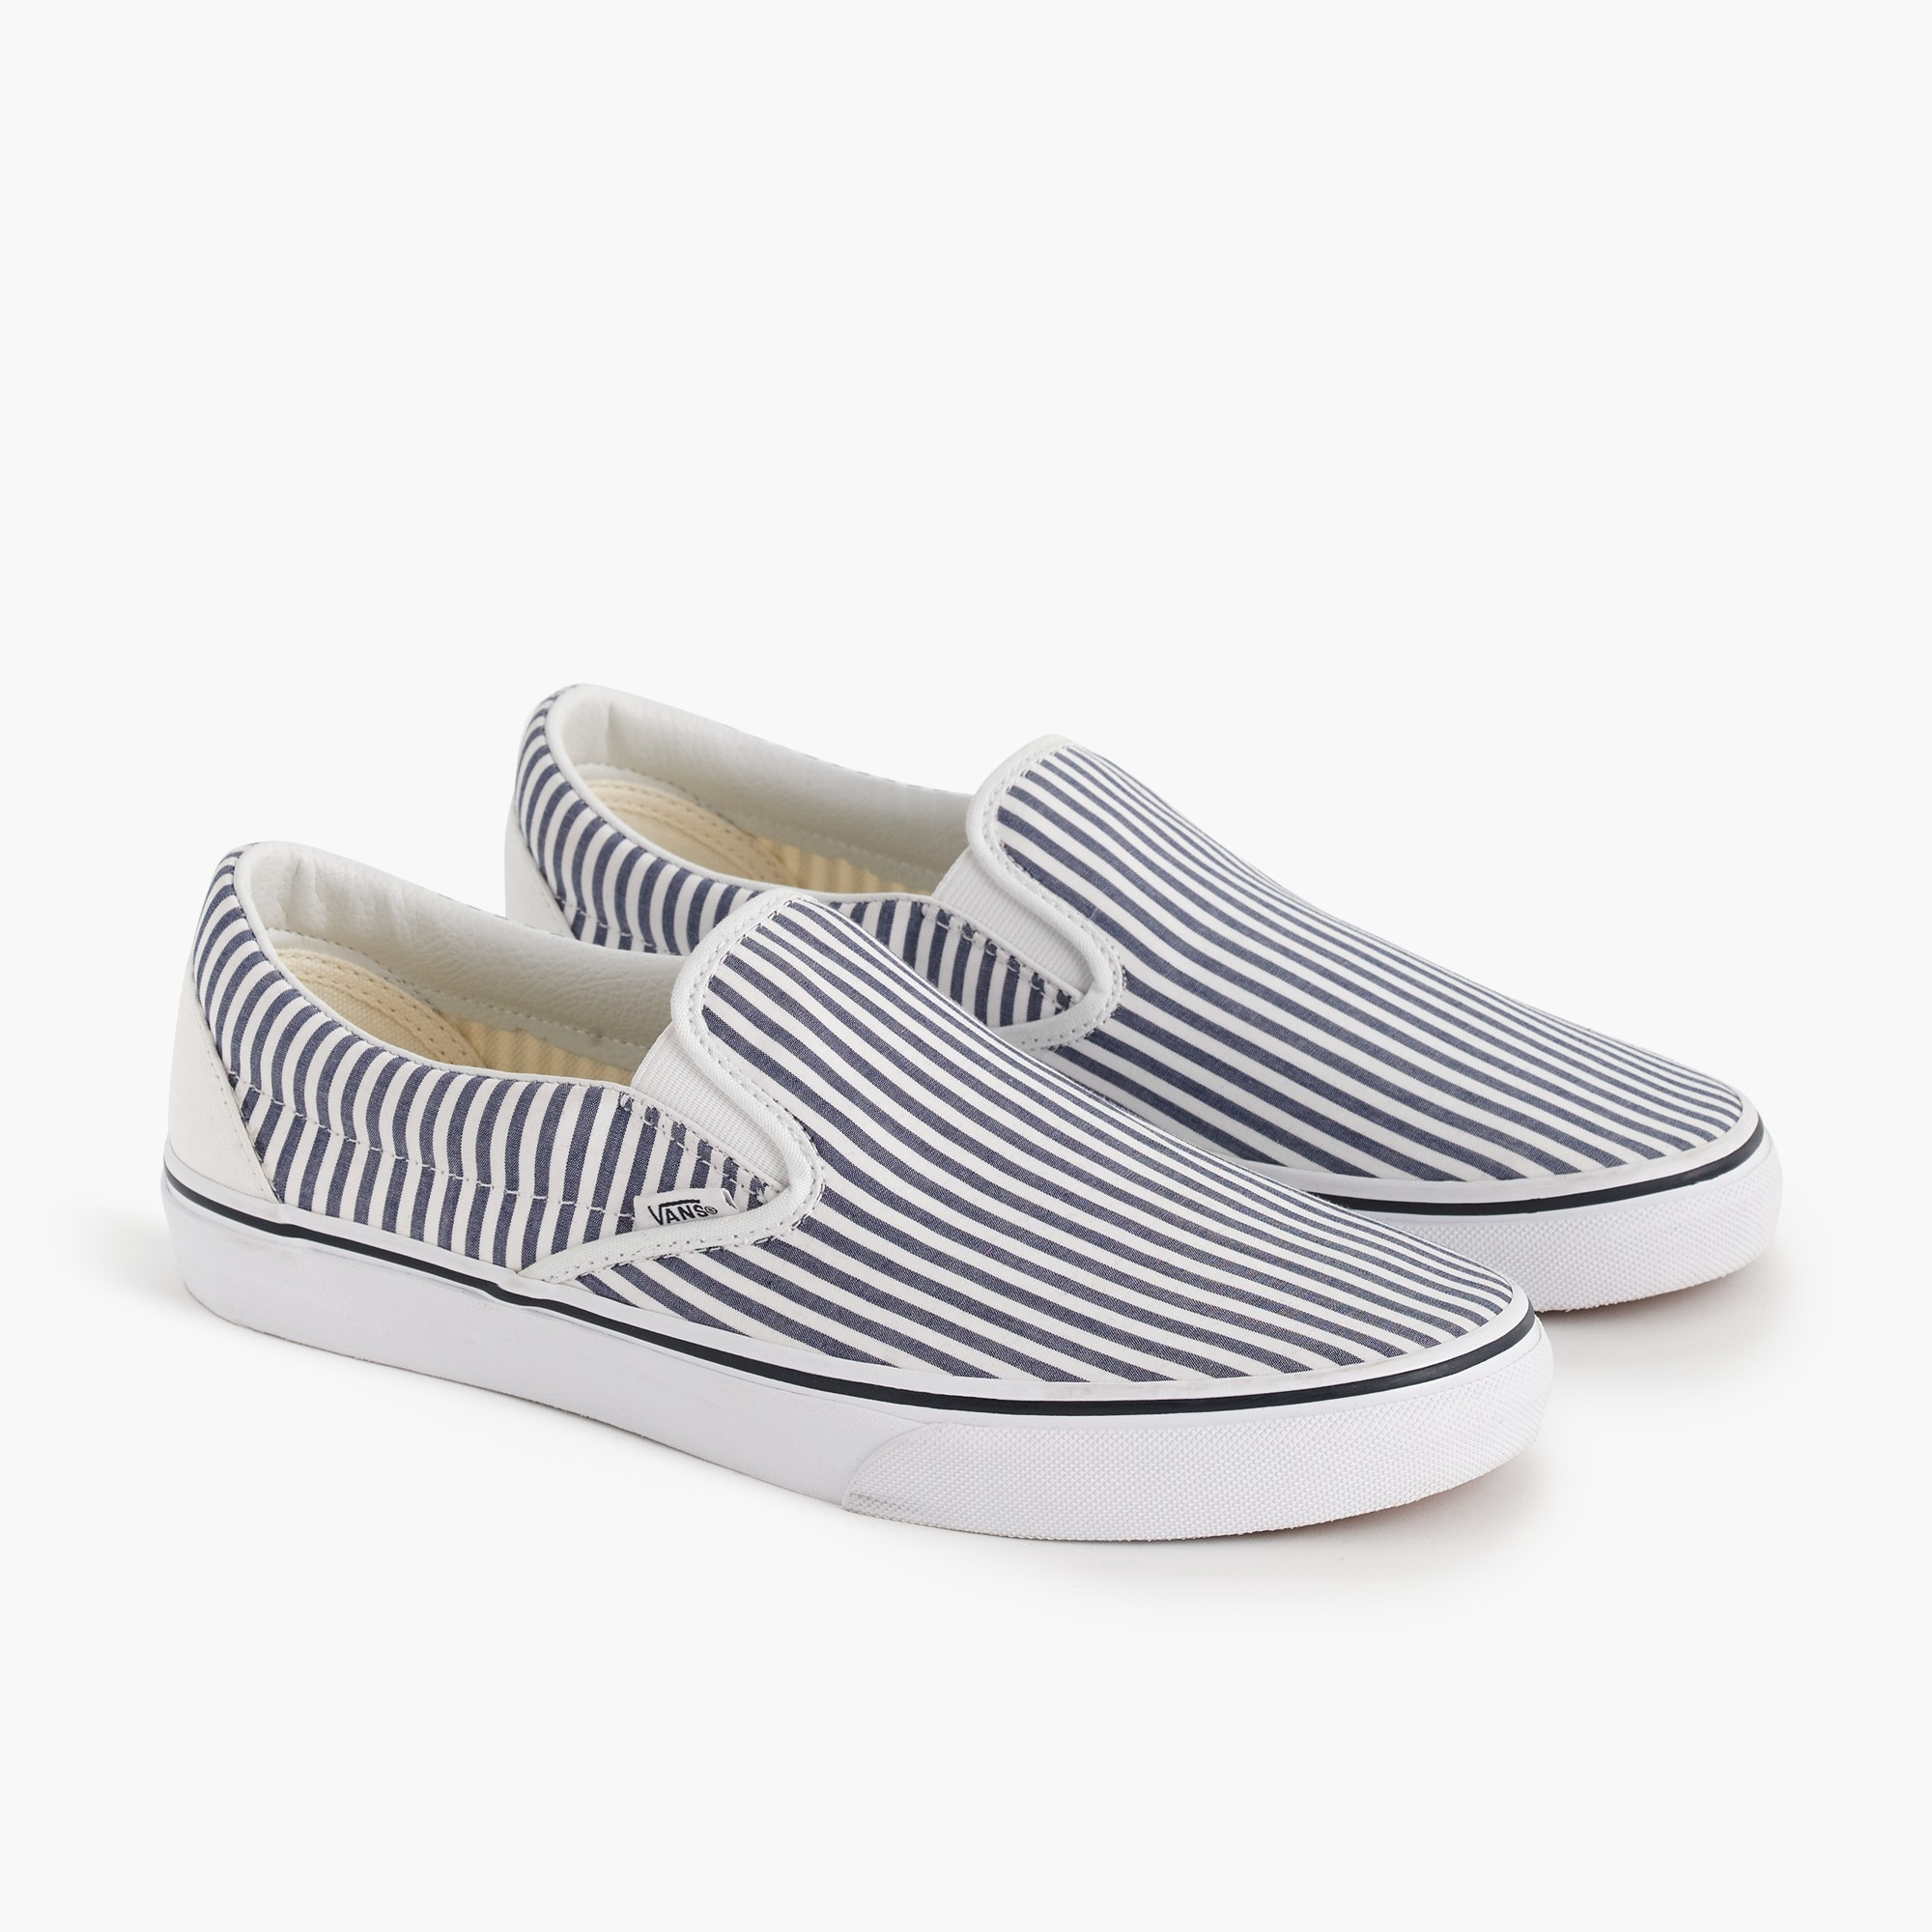 Vans® for J.Crew slip-on sneakers in seersucker stripe